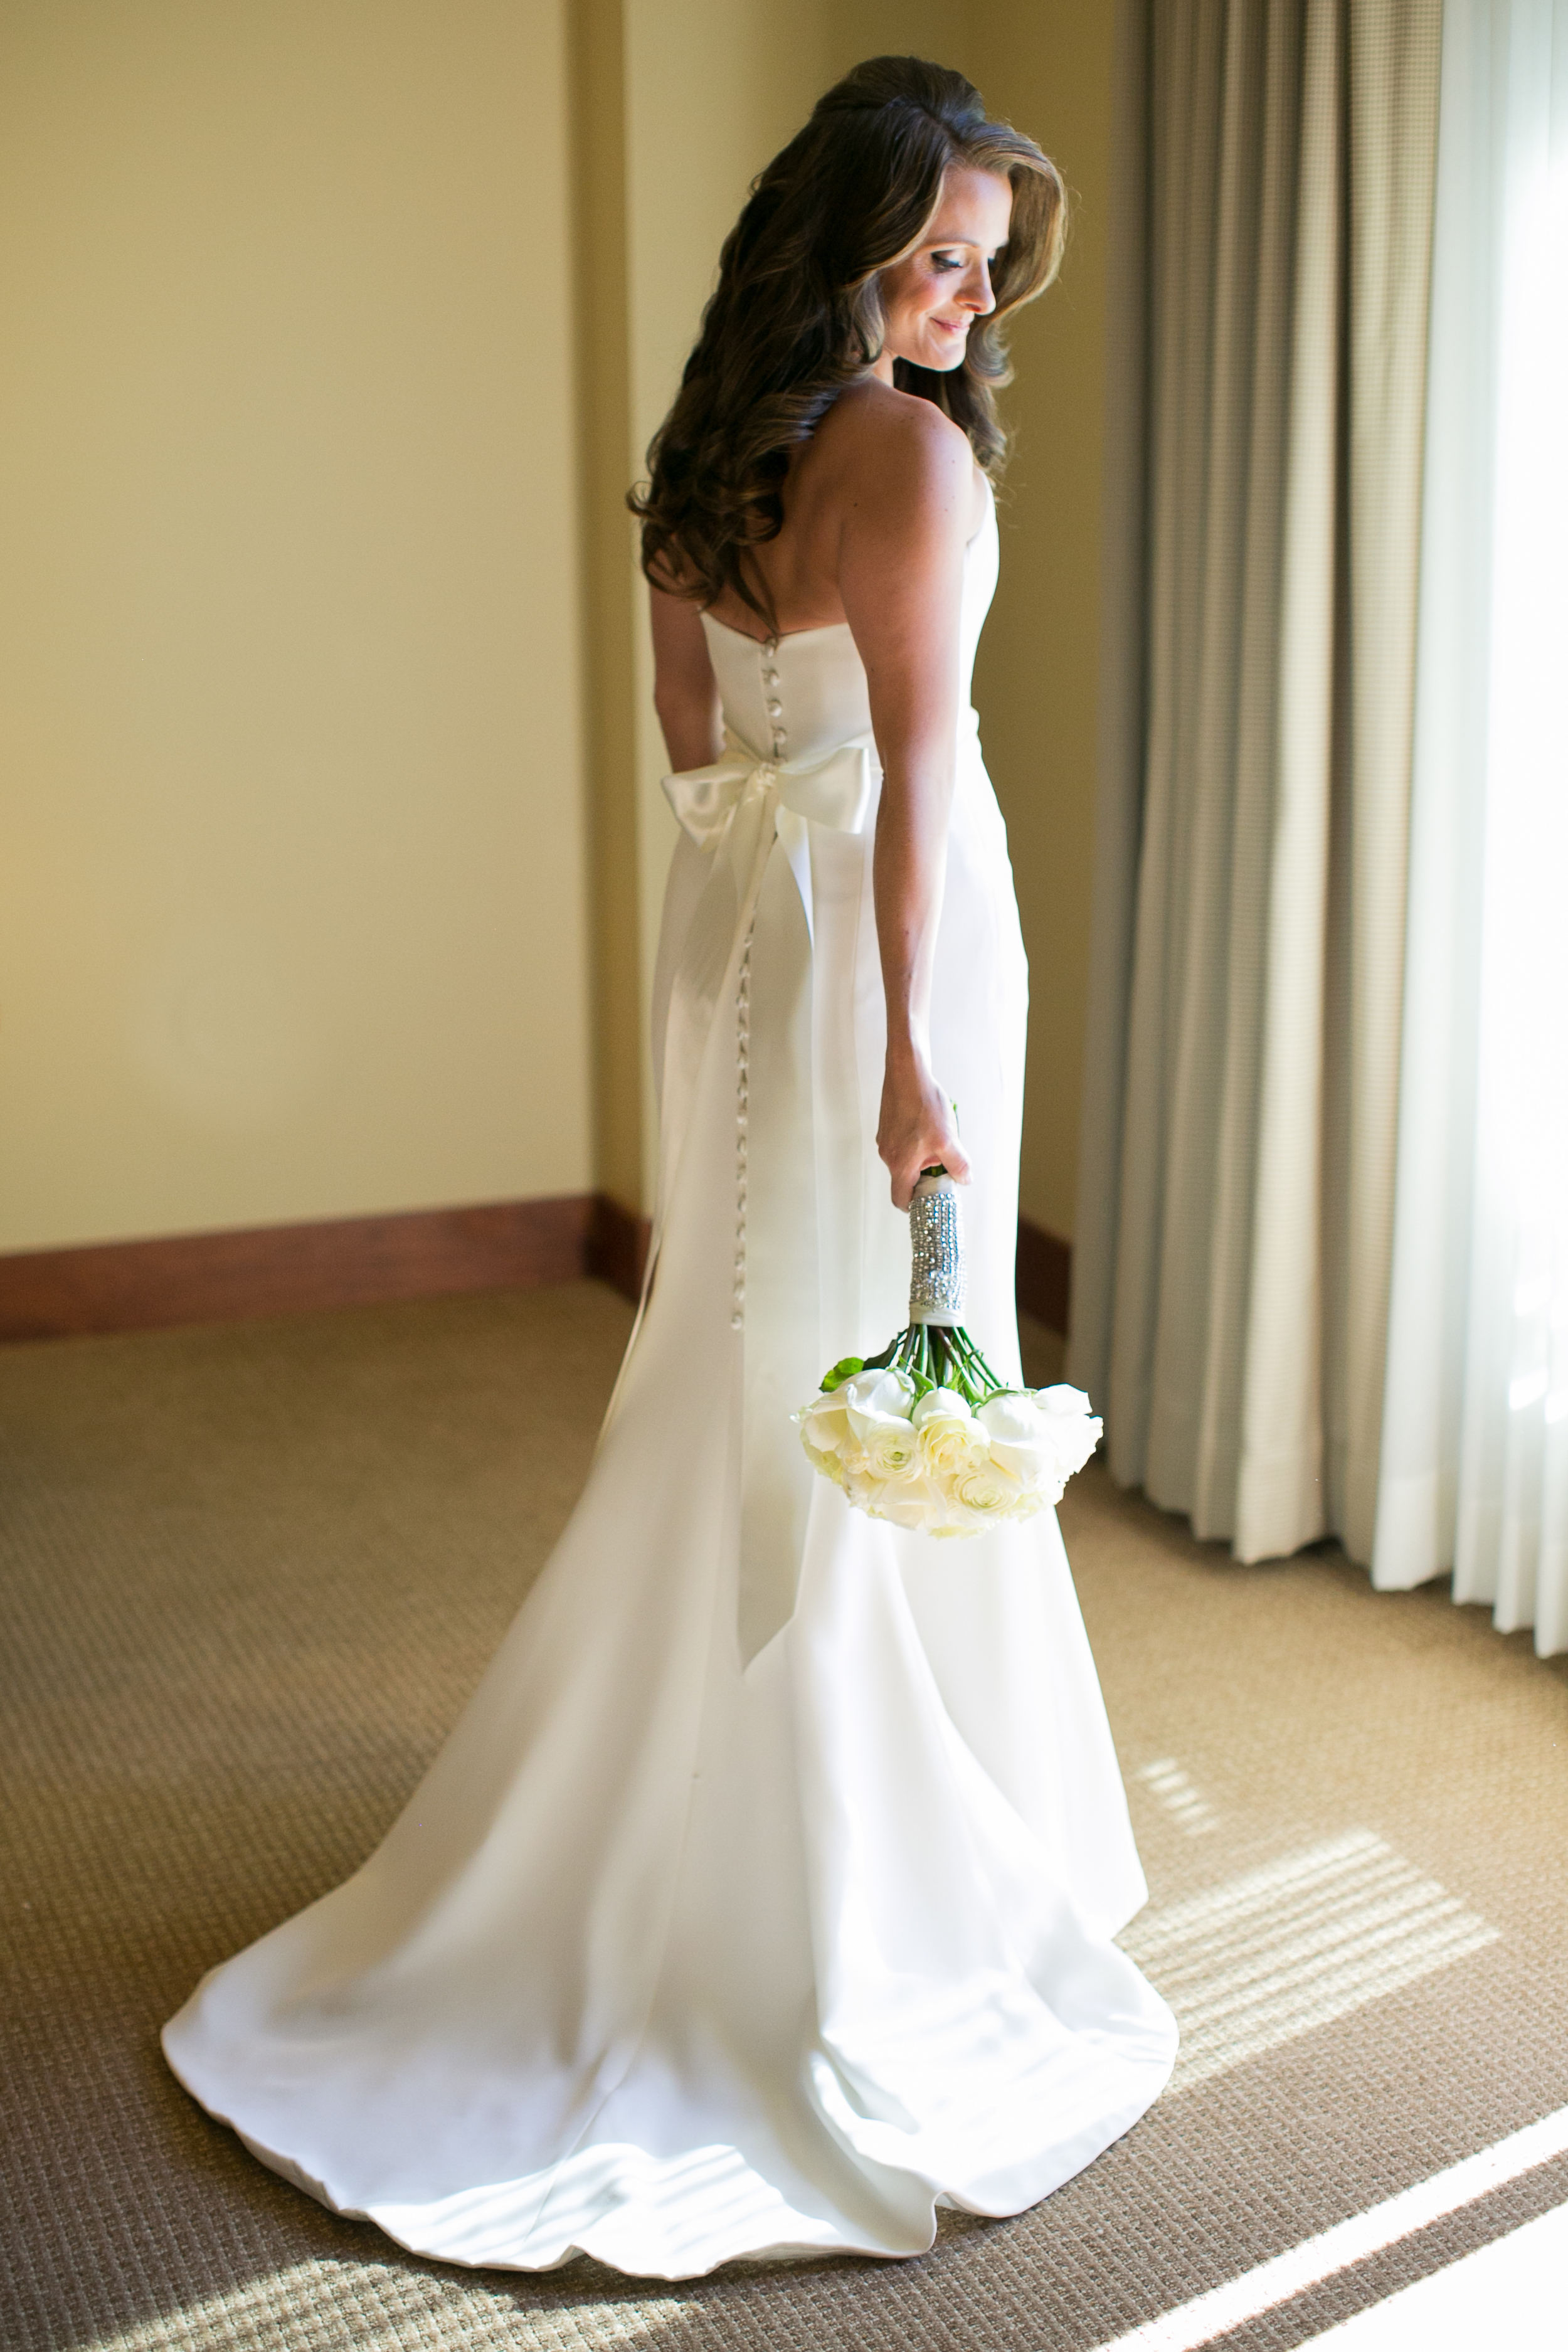 Misty in a Sassi Holford gown at her Vail wedding // photo by Cassidy Brooke Photography